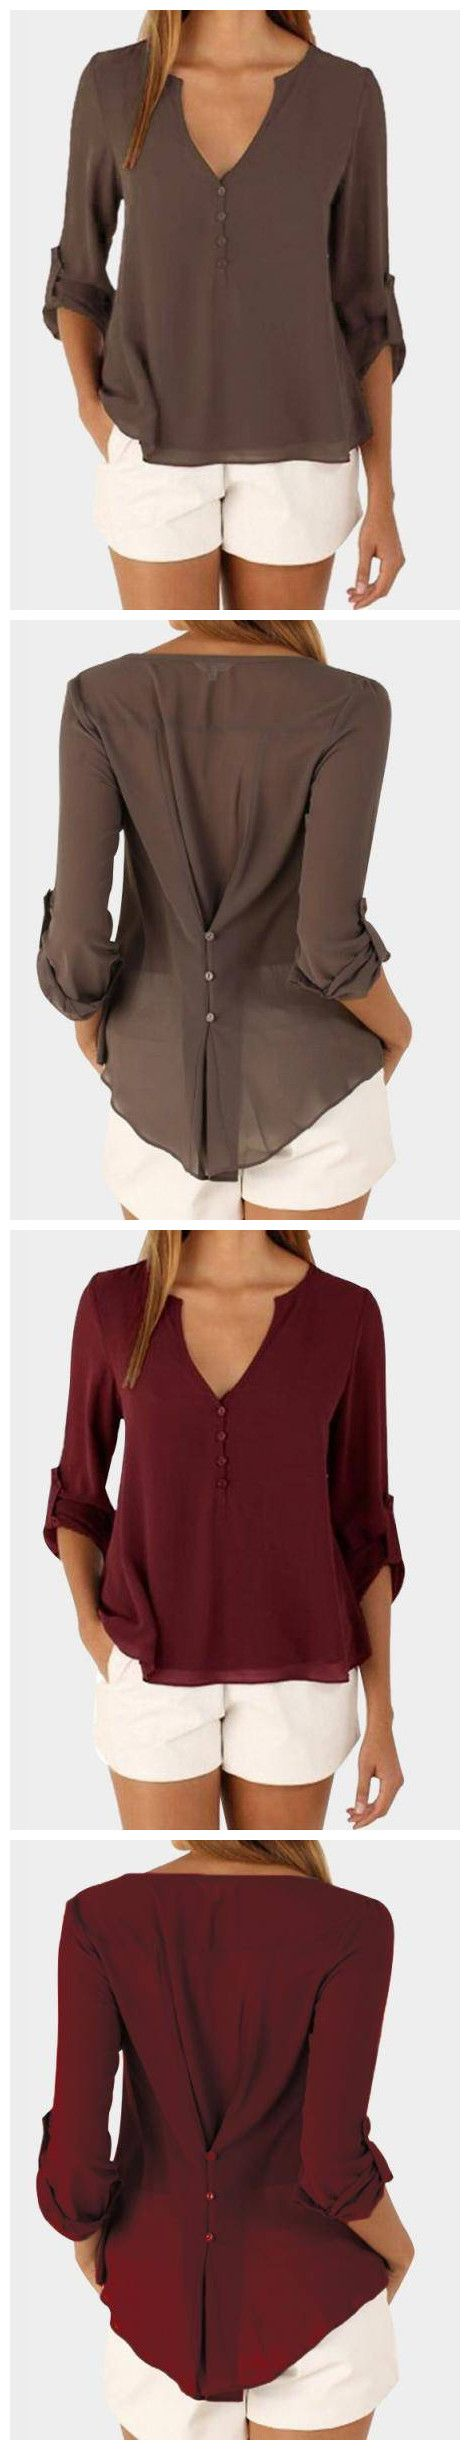 Here is the fashion t-shirt for you. Featuring v neck and irregular hem. Wear this day and night is ok. Perfect with black leggings or casual shorts.